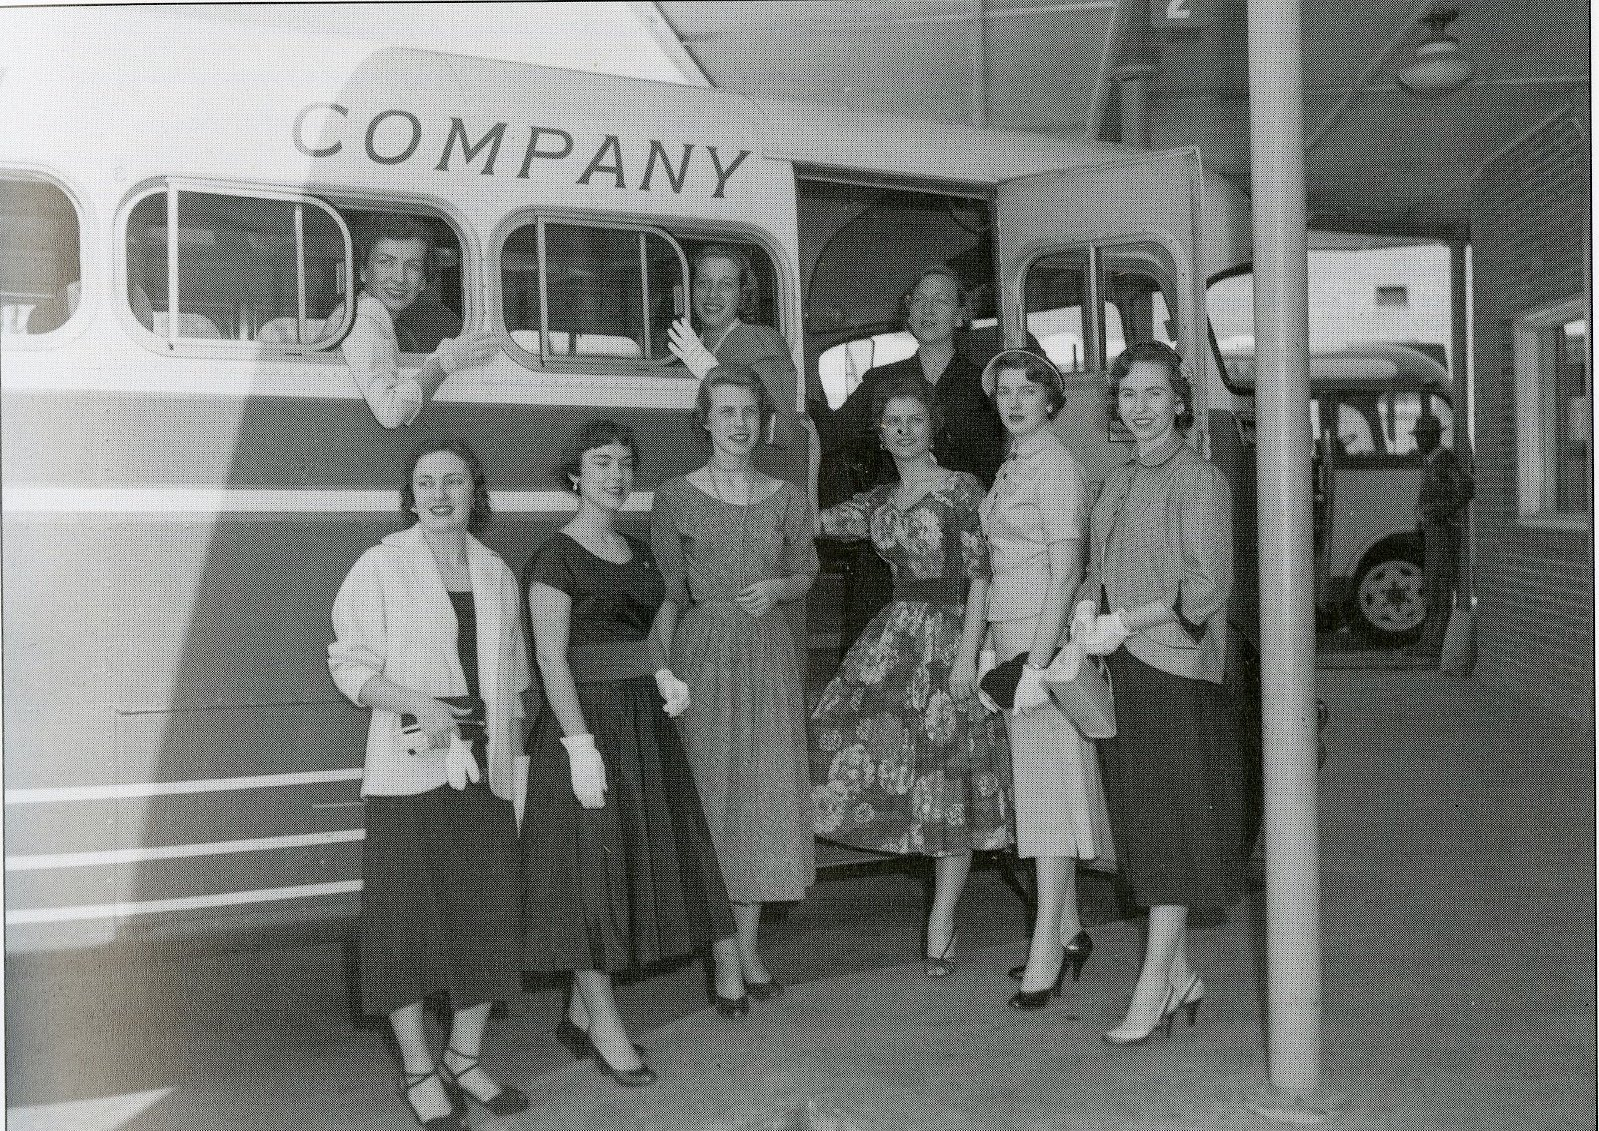 Some ladies posing while boarding their bus, c. 1950s.